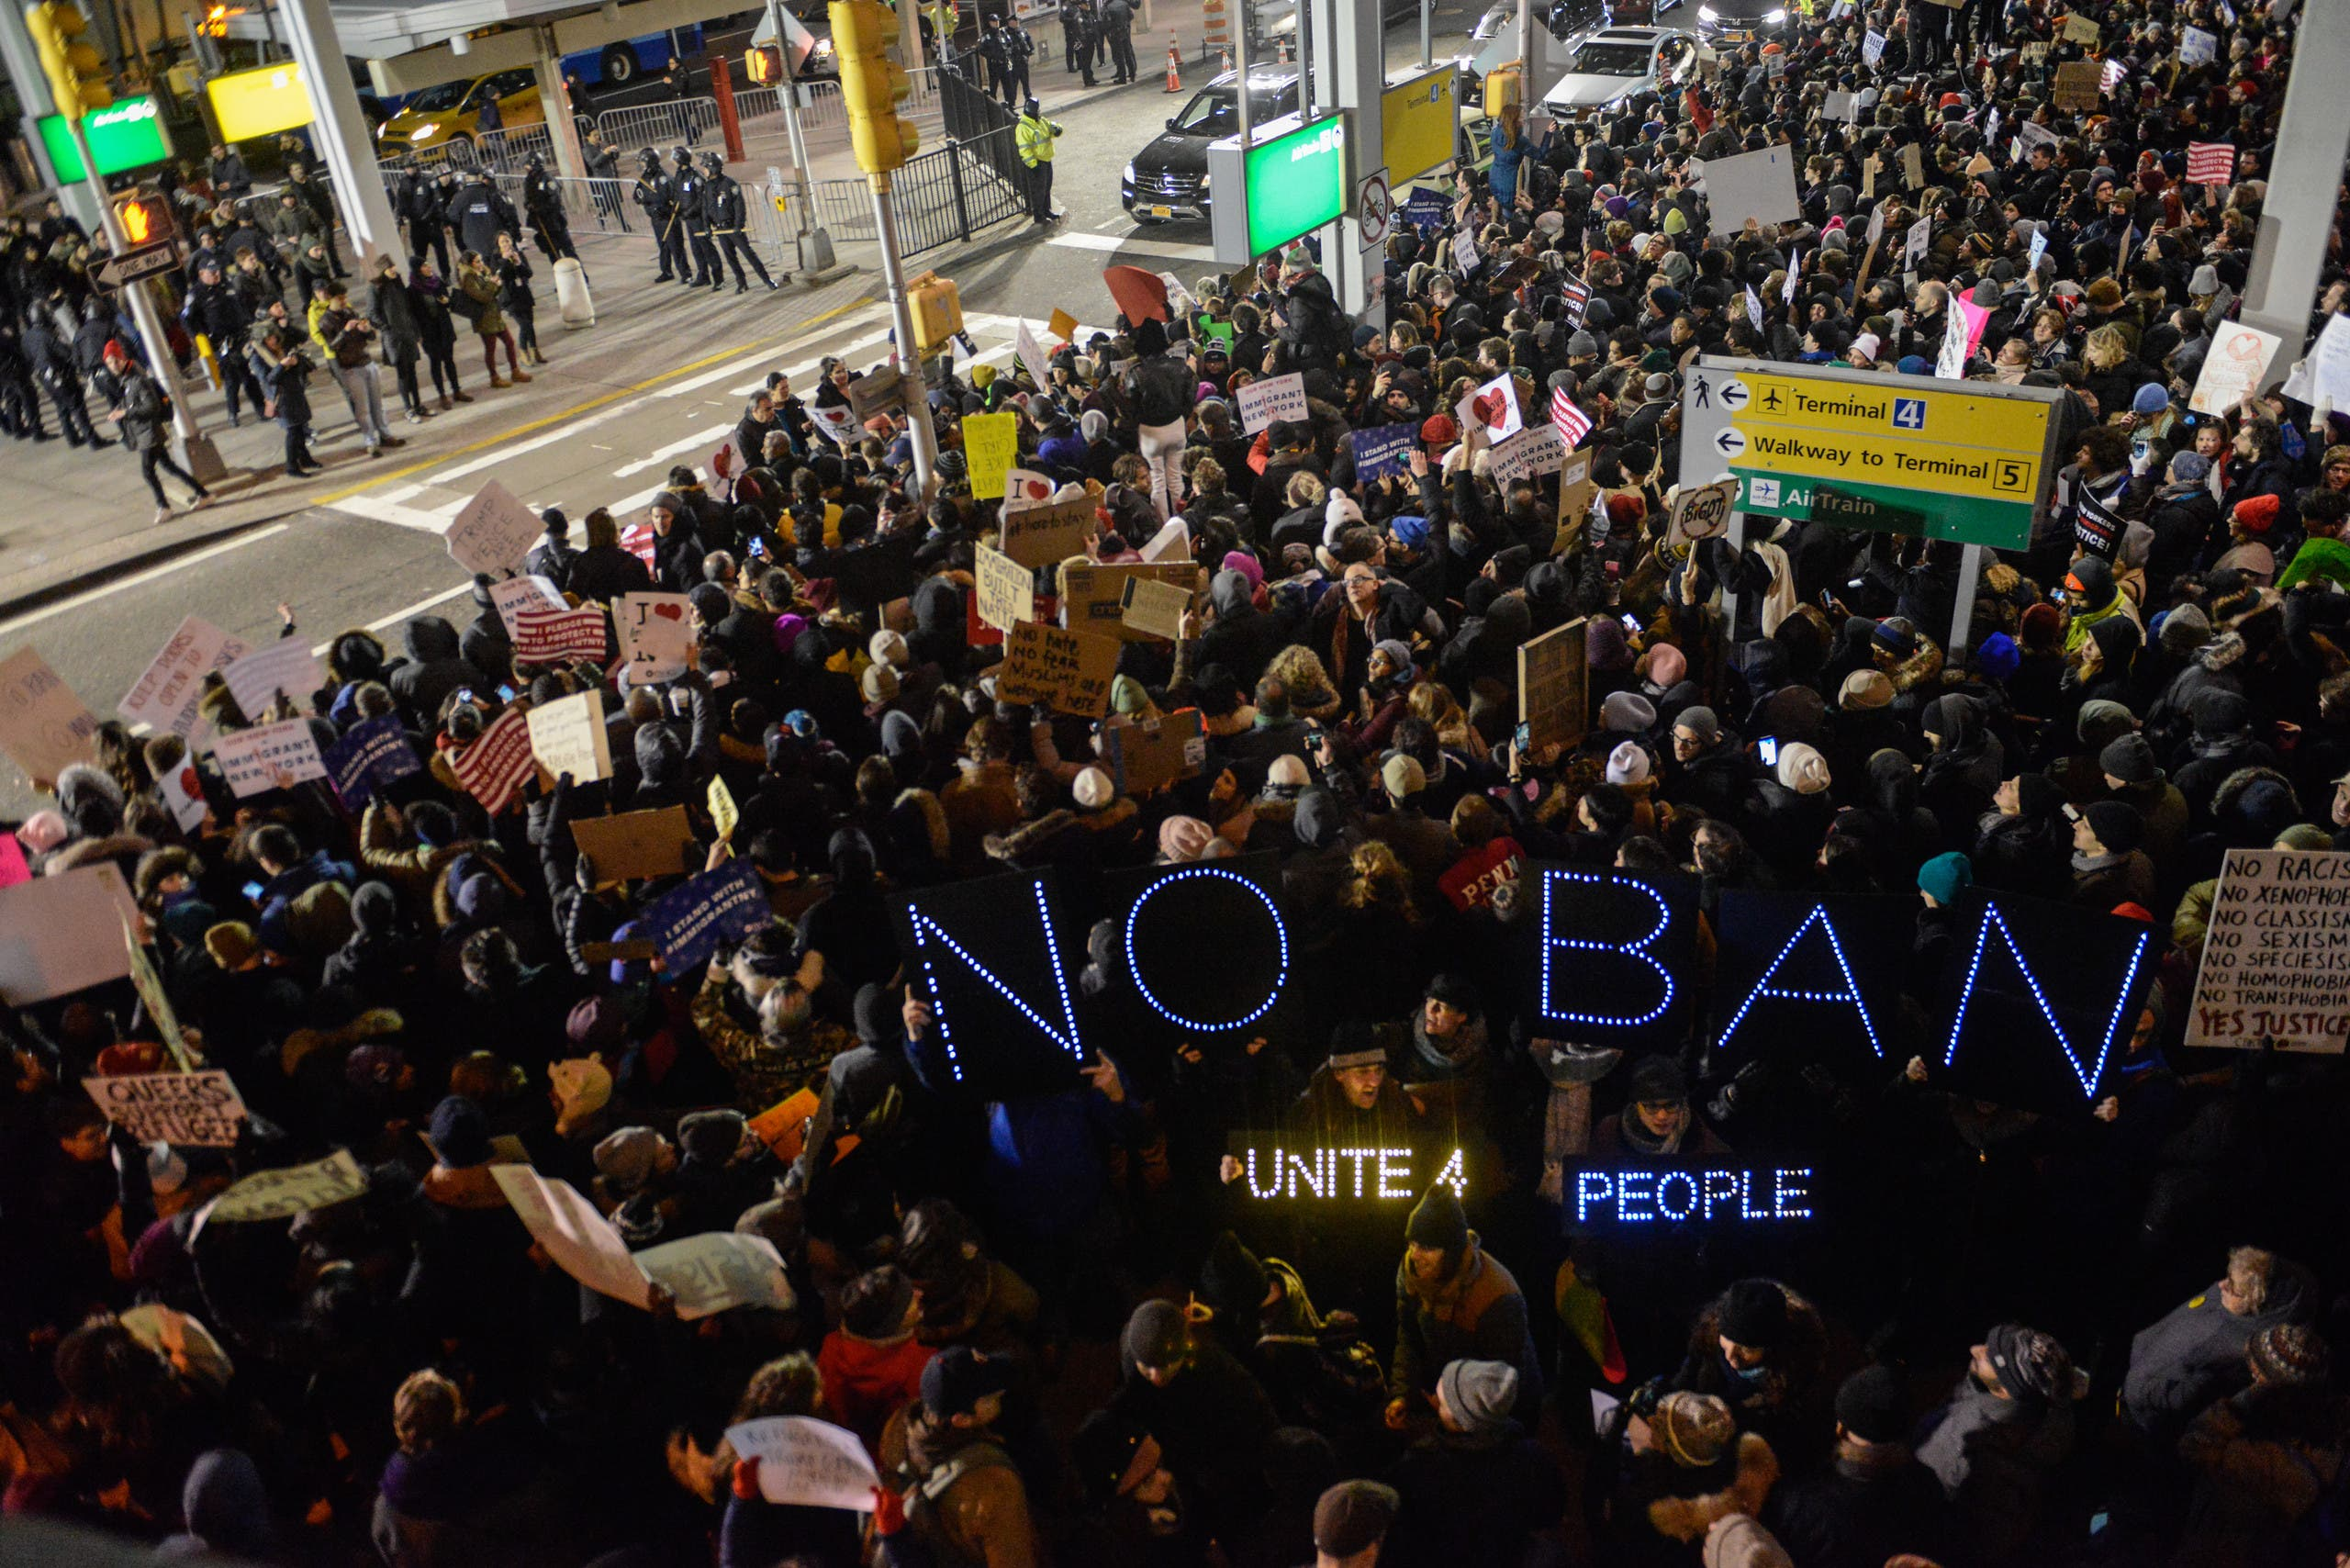 NEW YORK, NY - JANUARY 28: Protestors rally during a demonstration against the Muslim immigration ban at John F. Kennedy International Airport on January 28, 2017 in New York City. President Trump signed the controversial executive order that halted refugees and residents from predominantly Muslim countries from entering the United States. Stephanie Keith/Getty Images/AFP